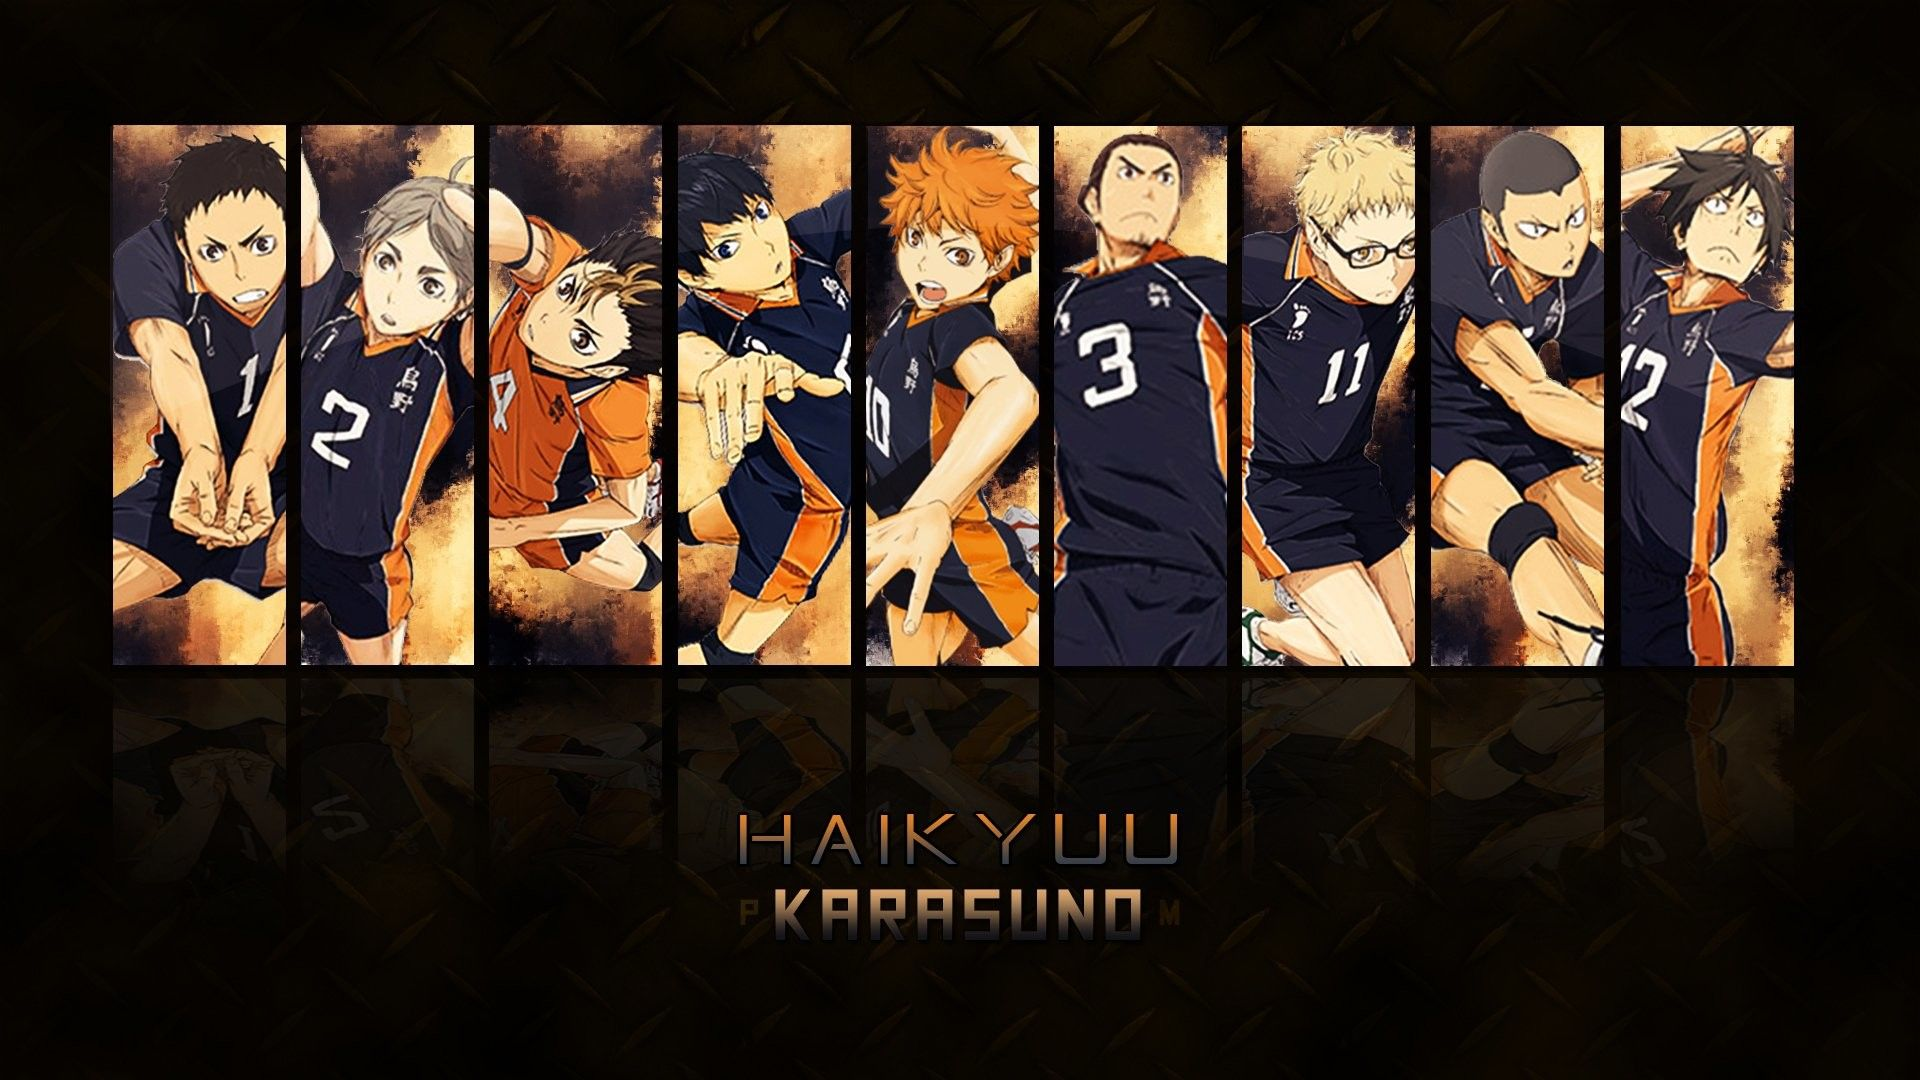 1920x1080 Wallpaper Haikyuu Wallpaper Anime Wallpaper 1920x1080 Haikyuu Anime